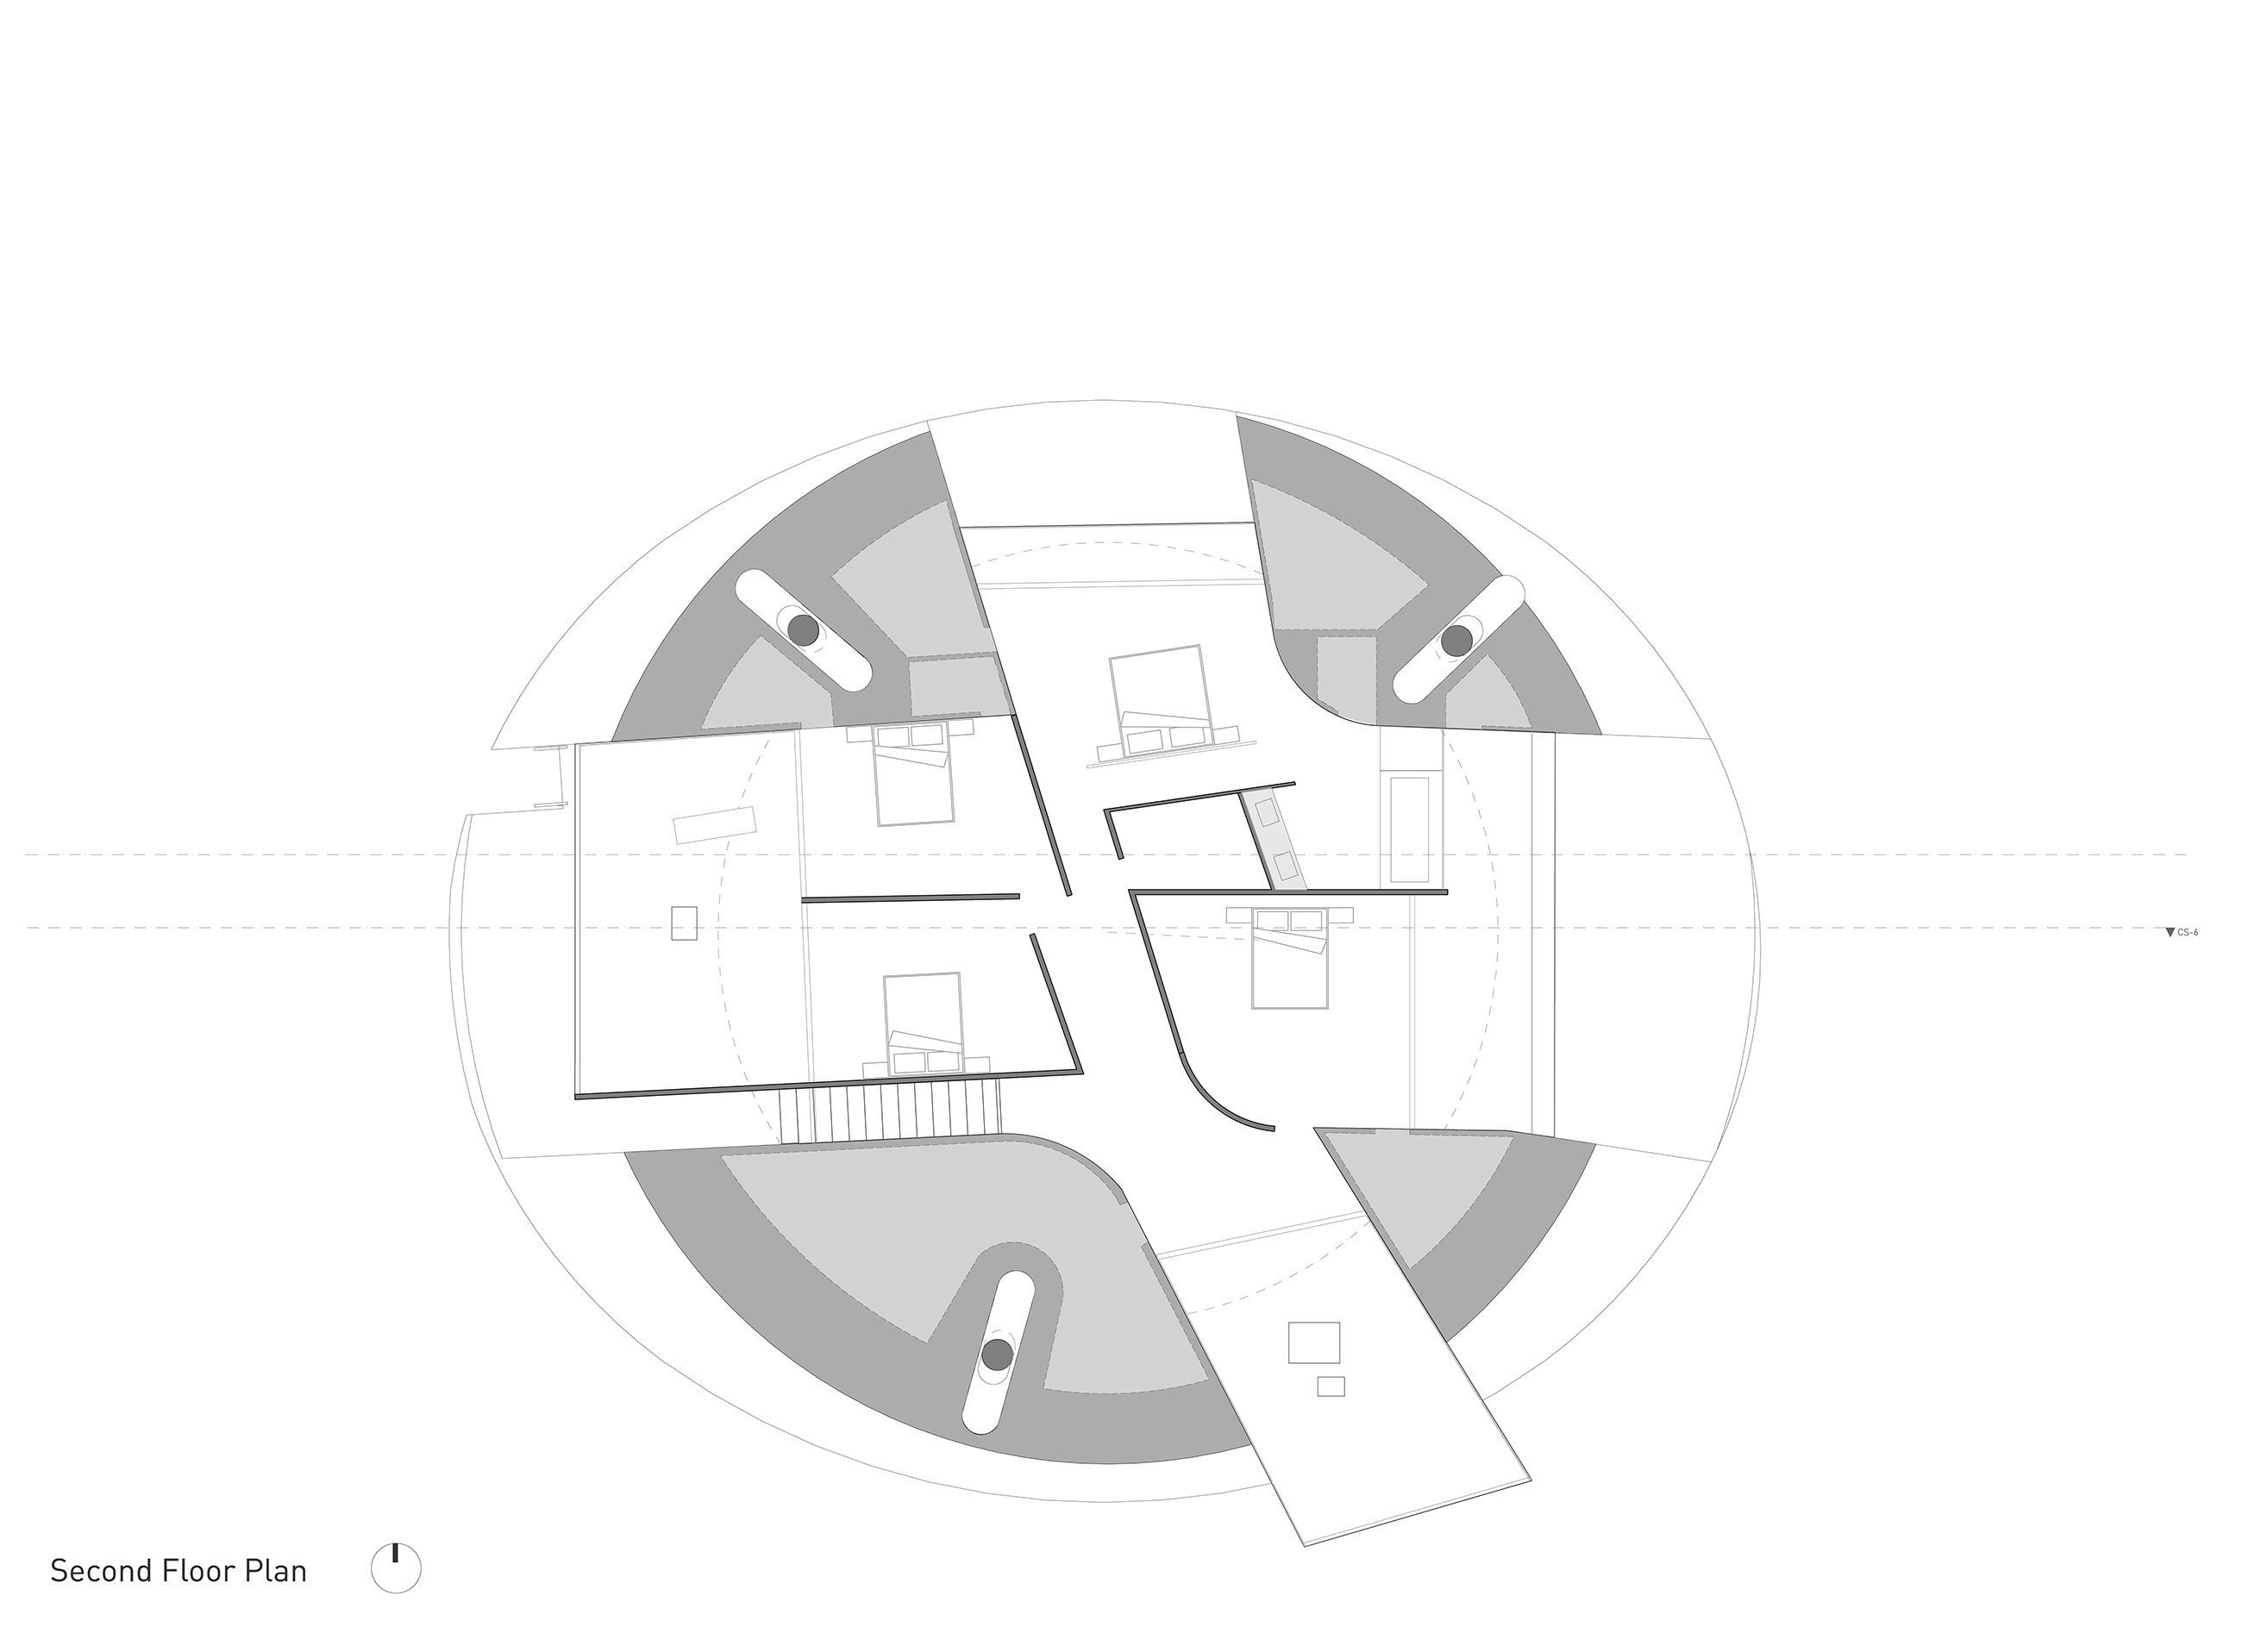 A3.2 Second Floor Plan _ Layout